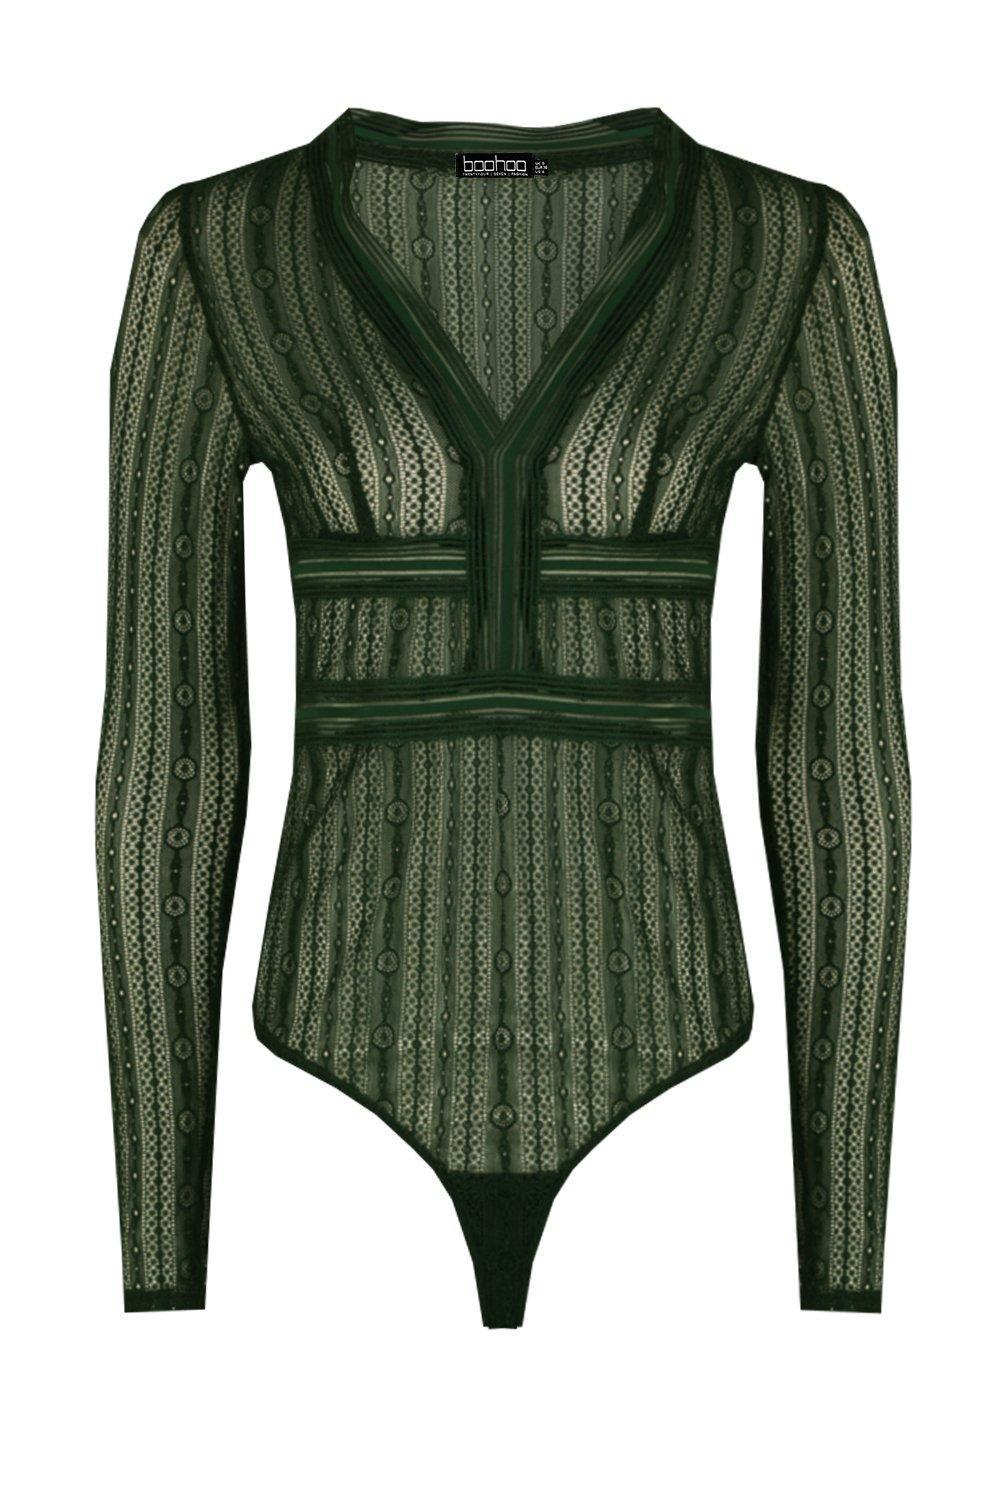 c25bc7d9430a Lyst - Boohoo Vera Long Sleeve Lace Plunge Bodysuit in Green